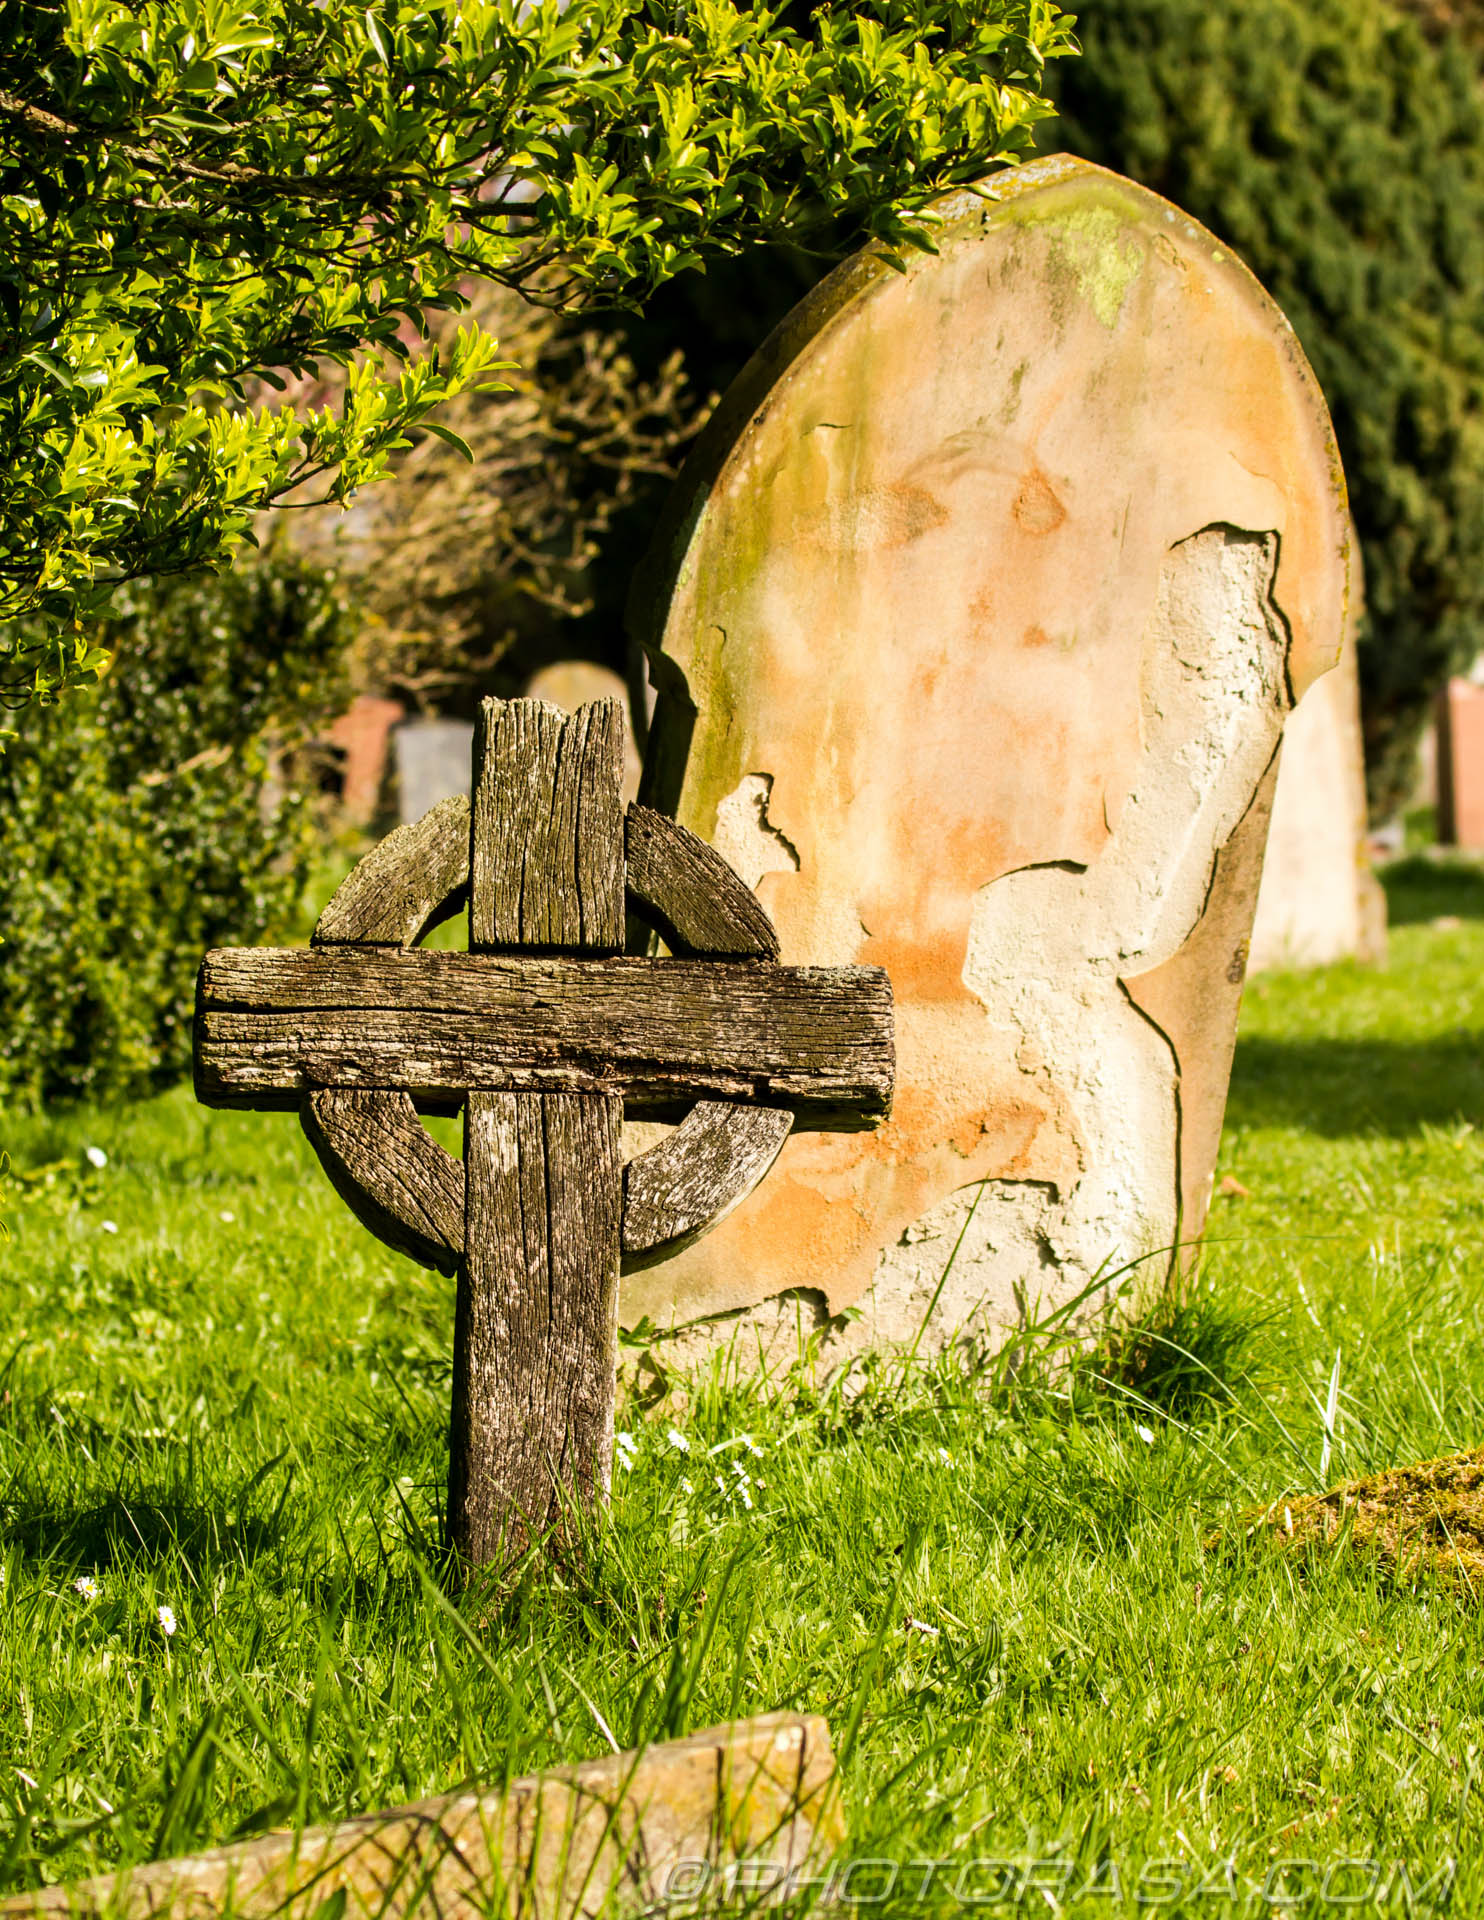 http://photorasa.com/saints-church-staplehurst-kent/old-wooden-celtic-cross-and-stone-grave/